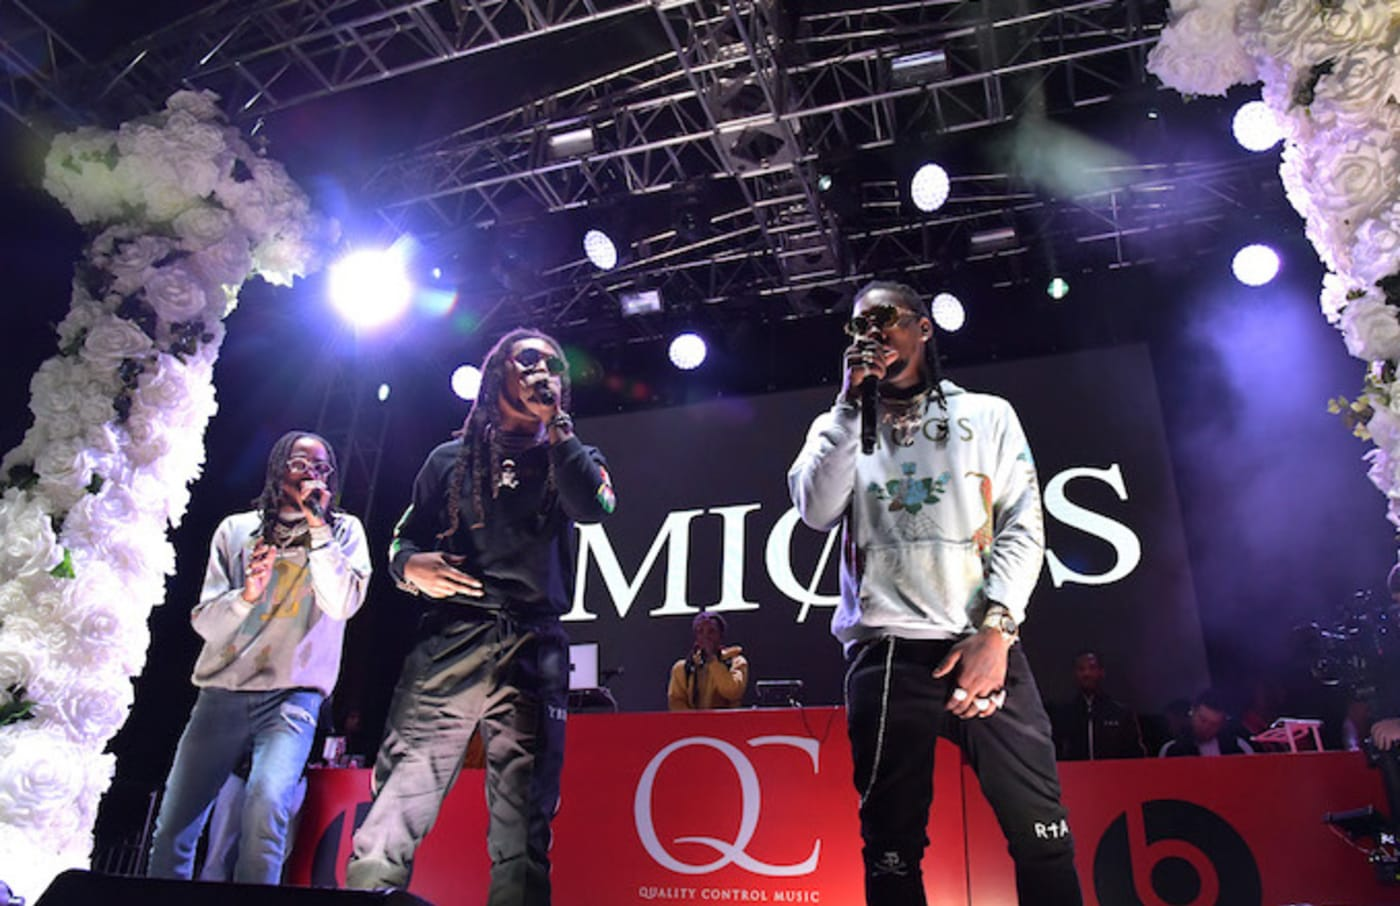 Recording artists Quavo, Takeoff, and Offset of music group Migos